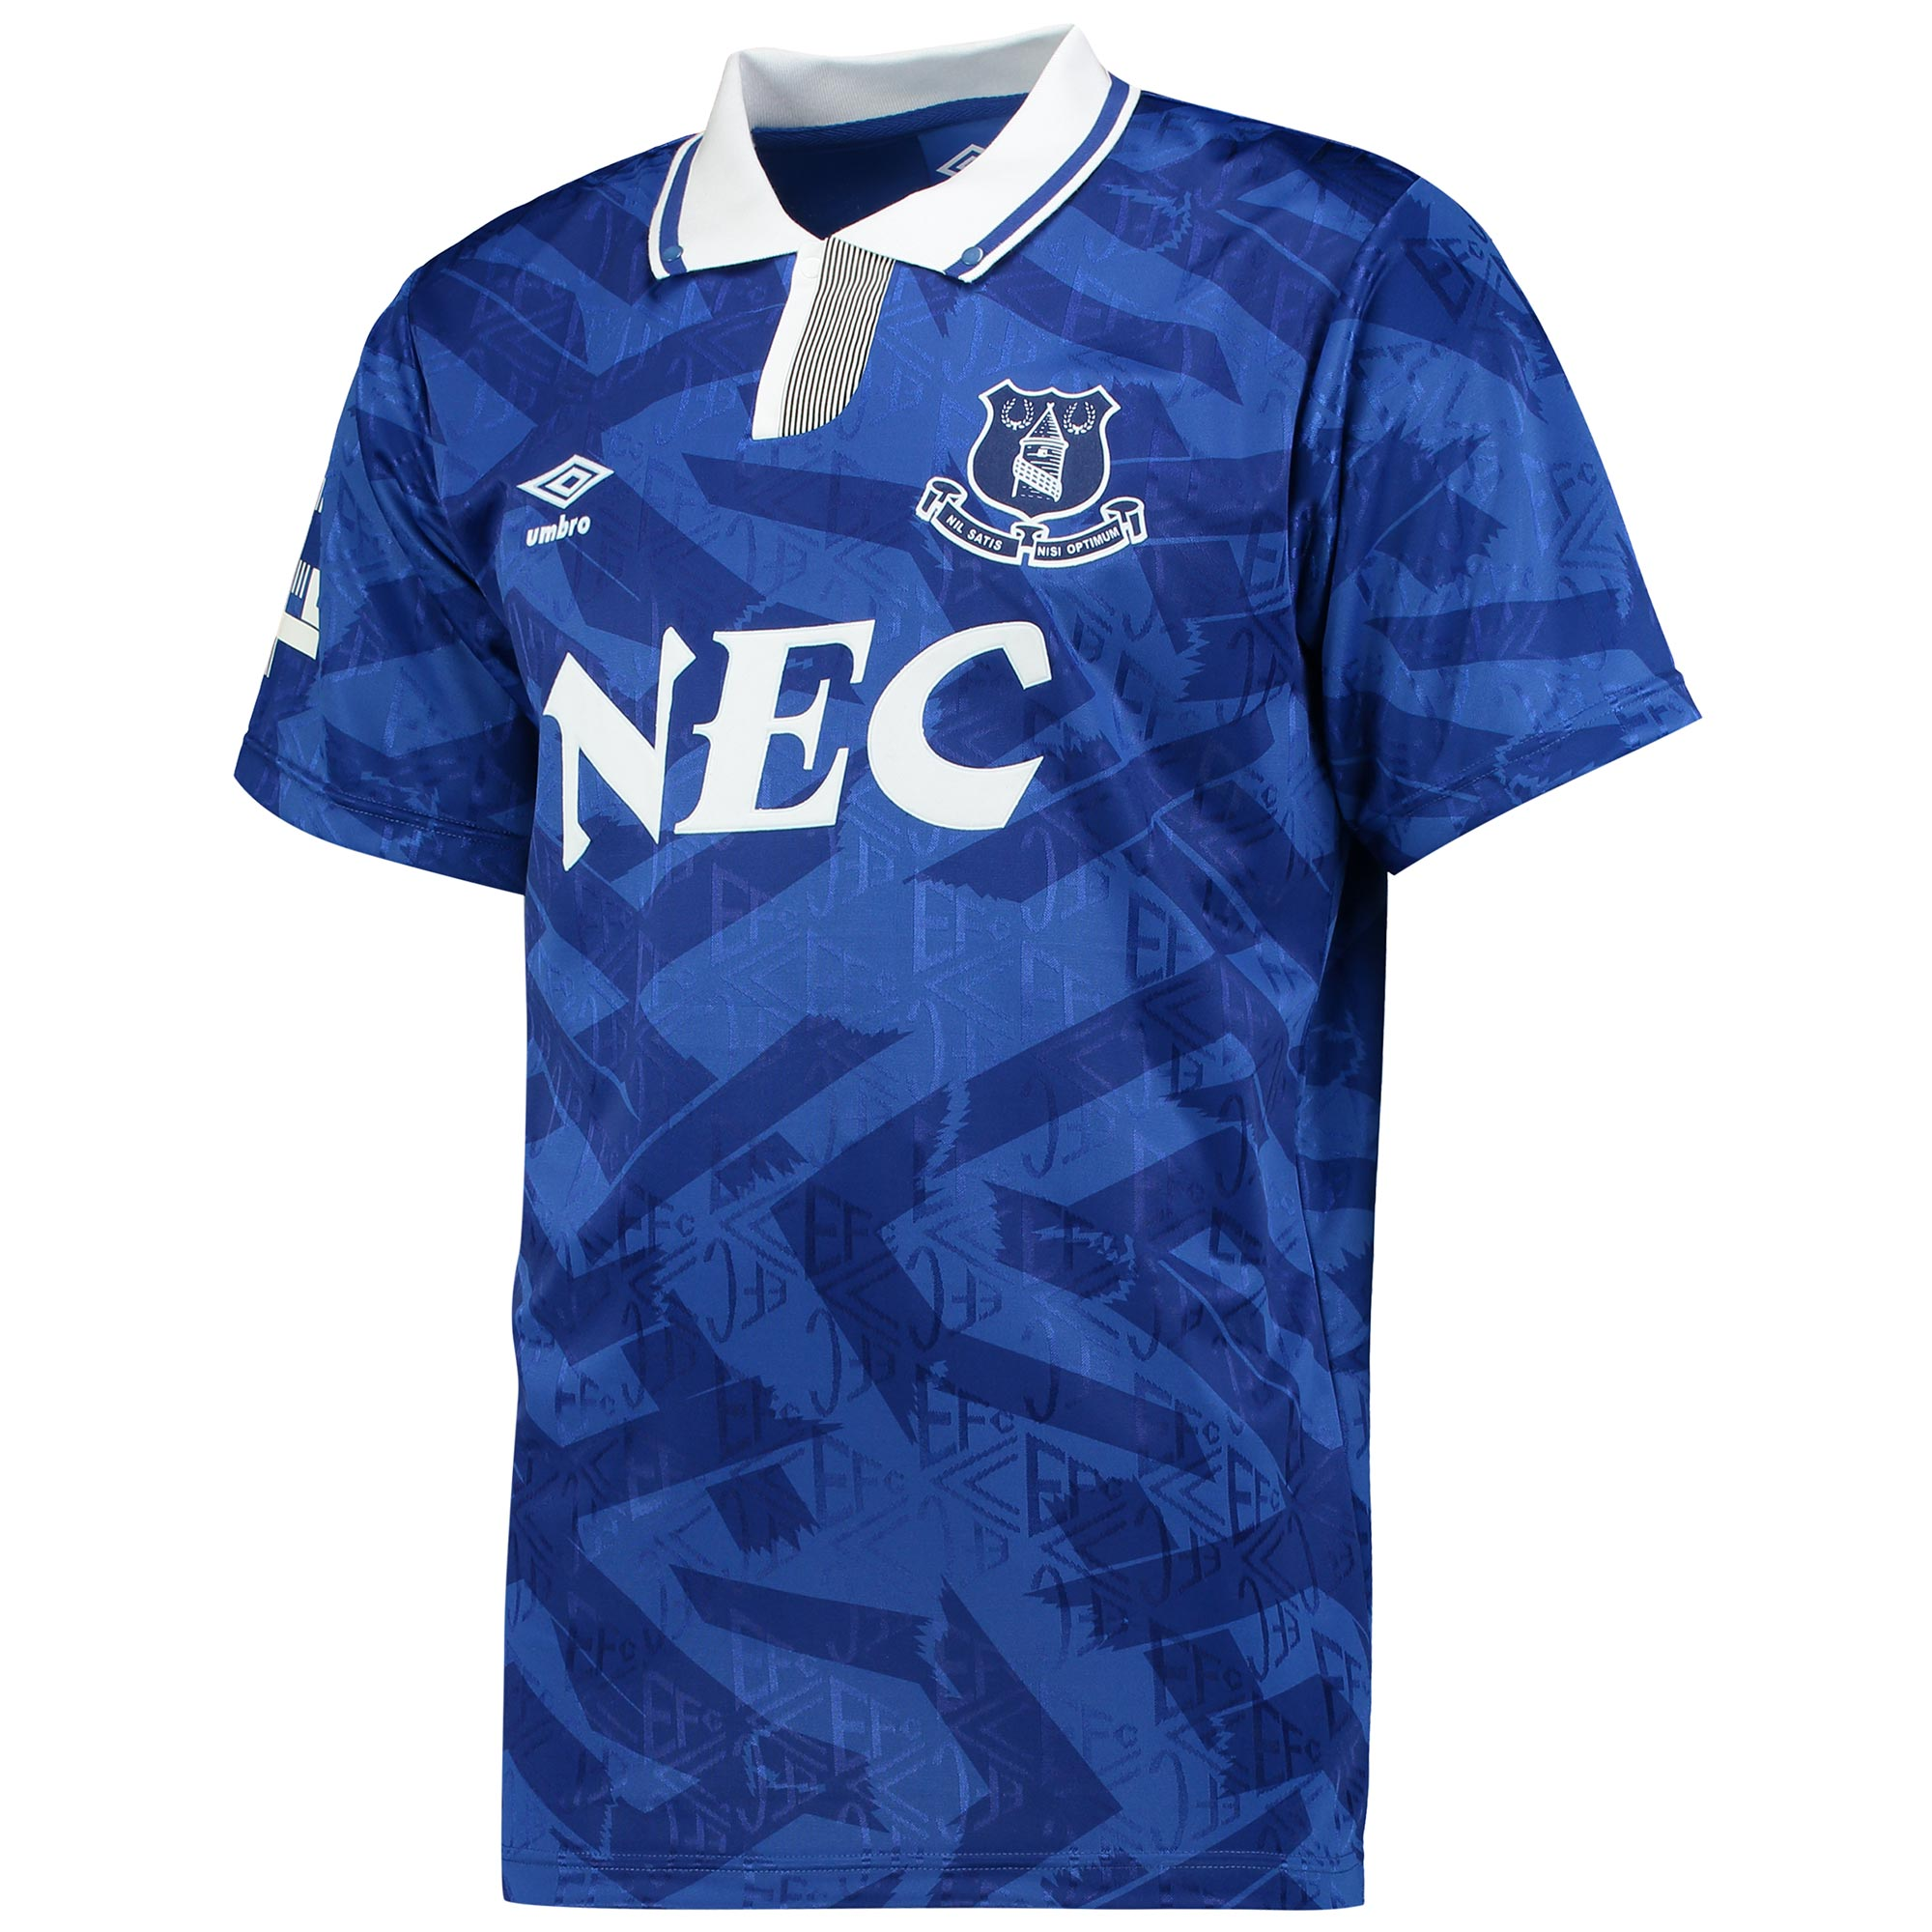 Everton 1992 Home Shirt